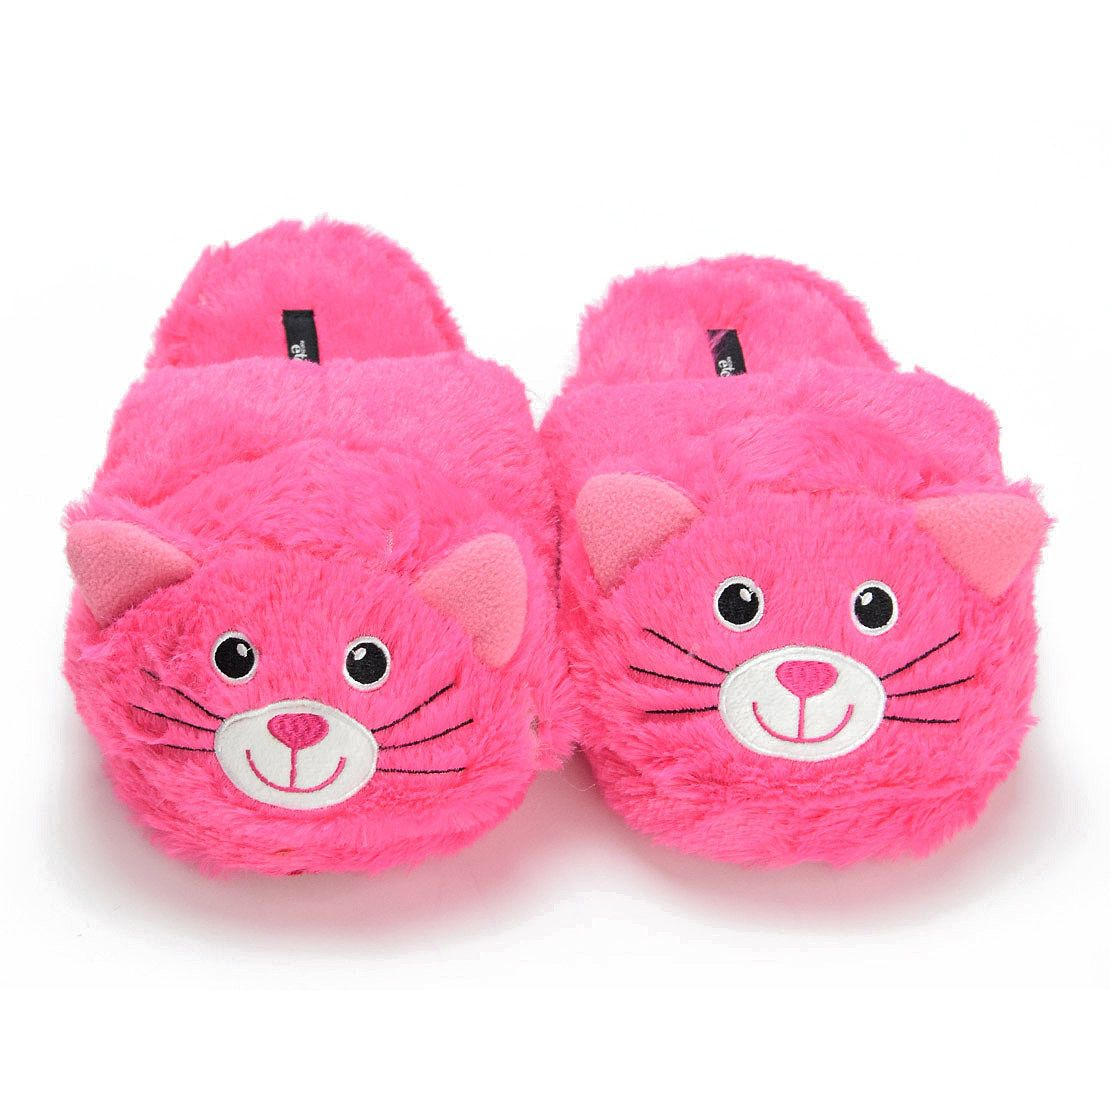 Women s Pink Cat Animal Slippers - Soft Cozy Warm Indoor Home Lady Slipper  Shoes 6052b7c9d